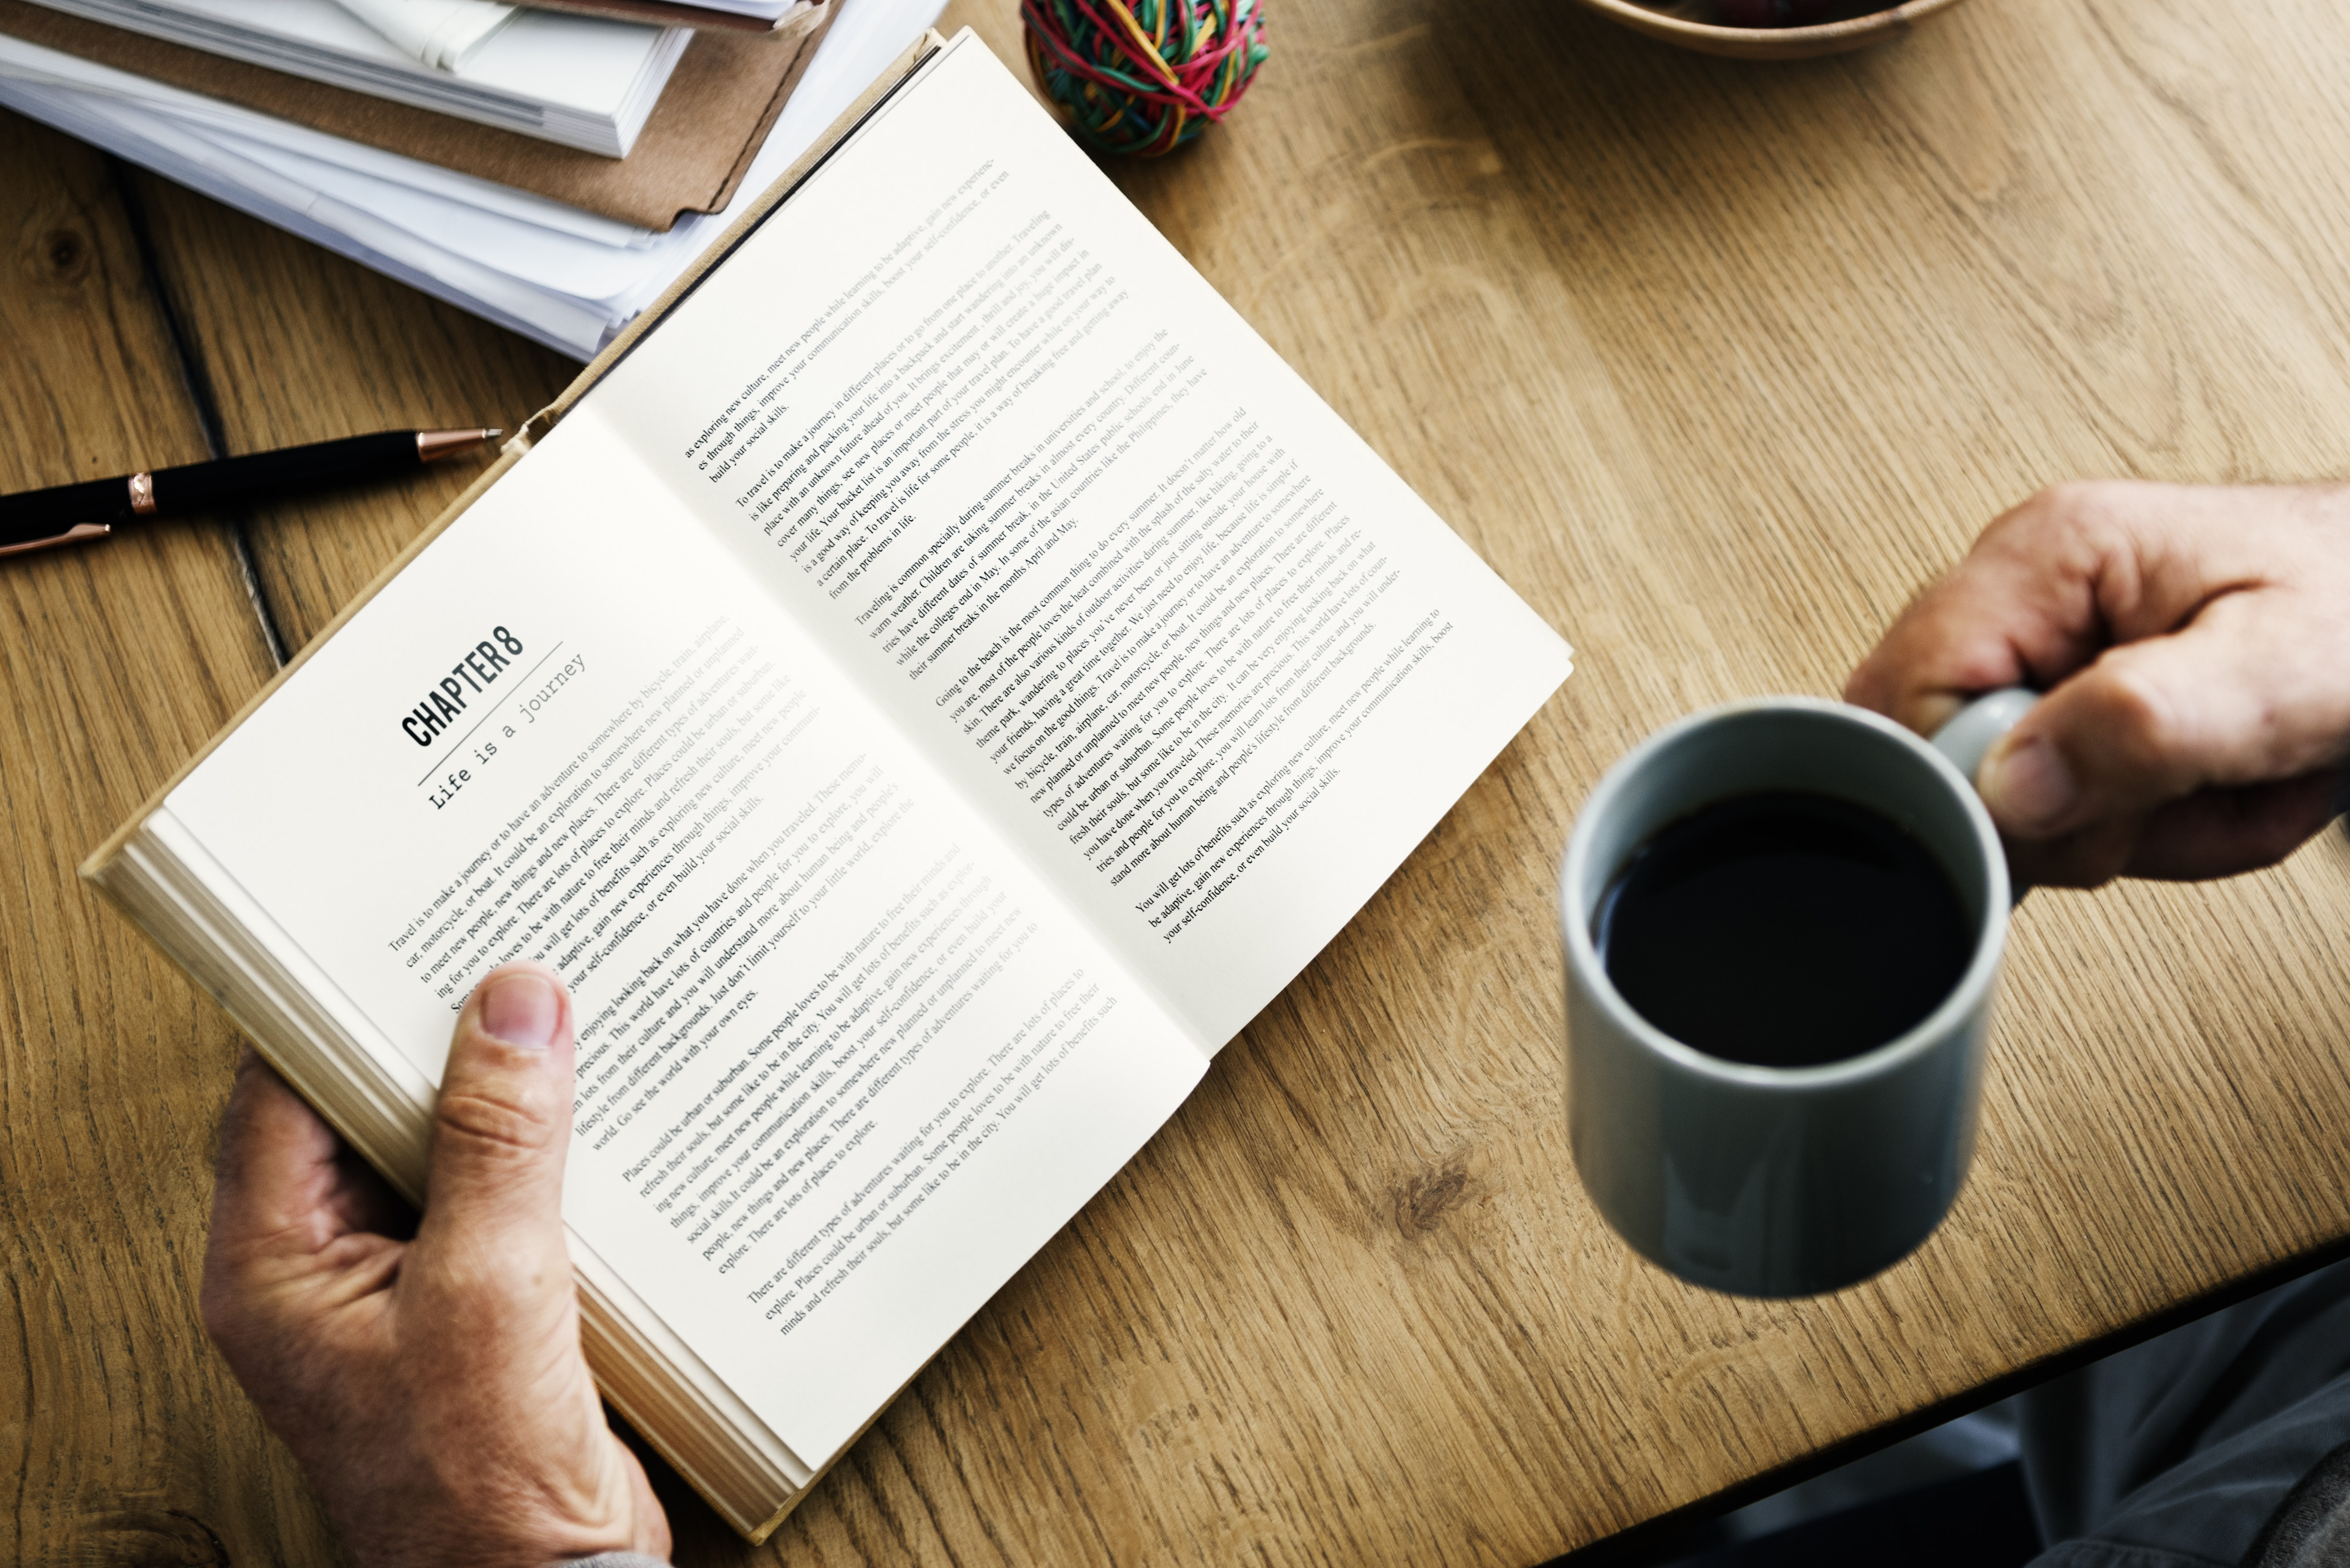 person holding blue mug and book near table